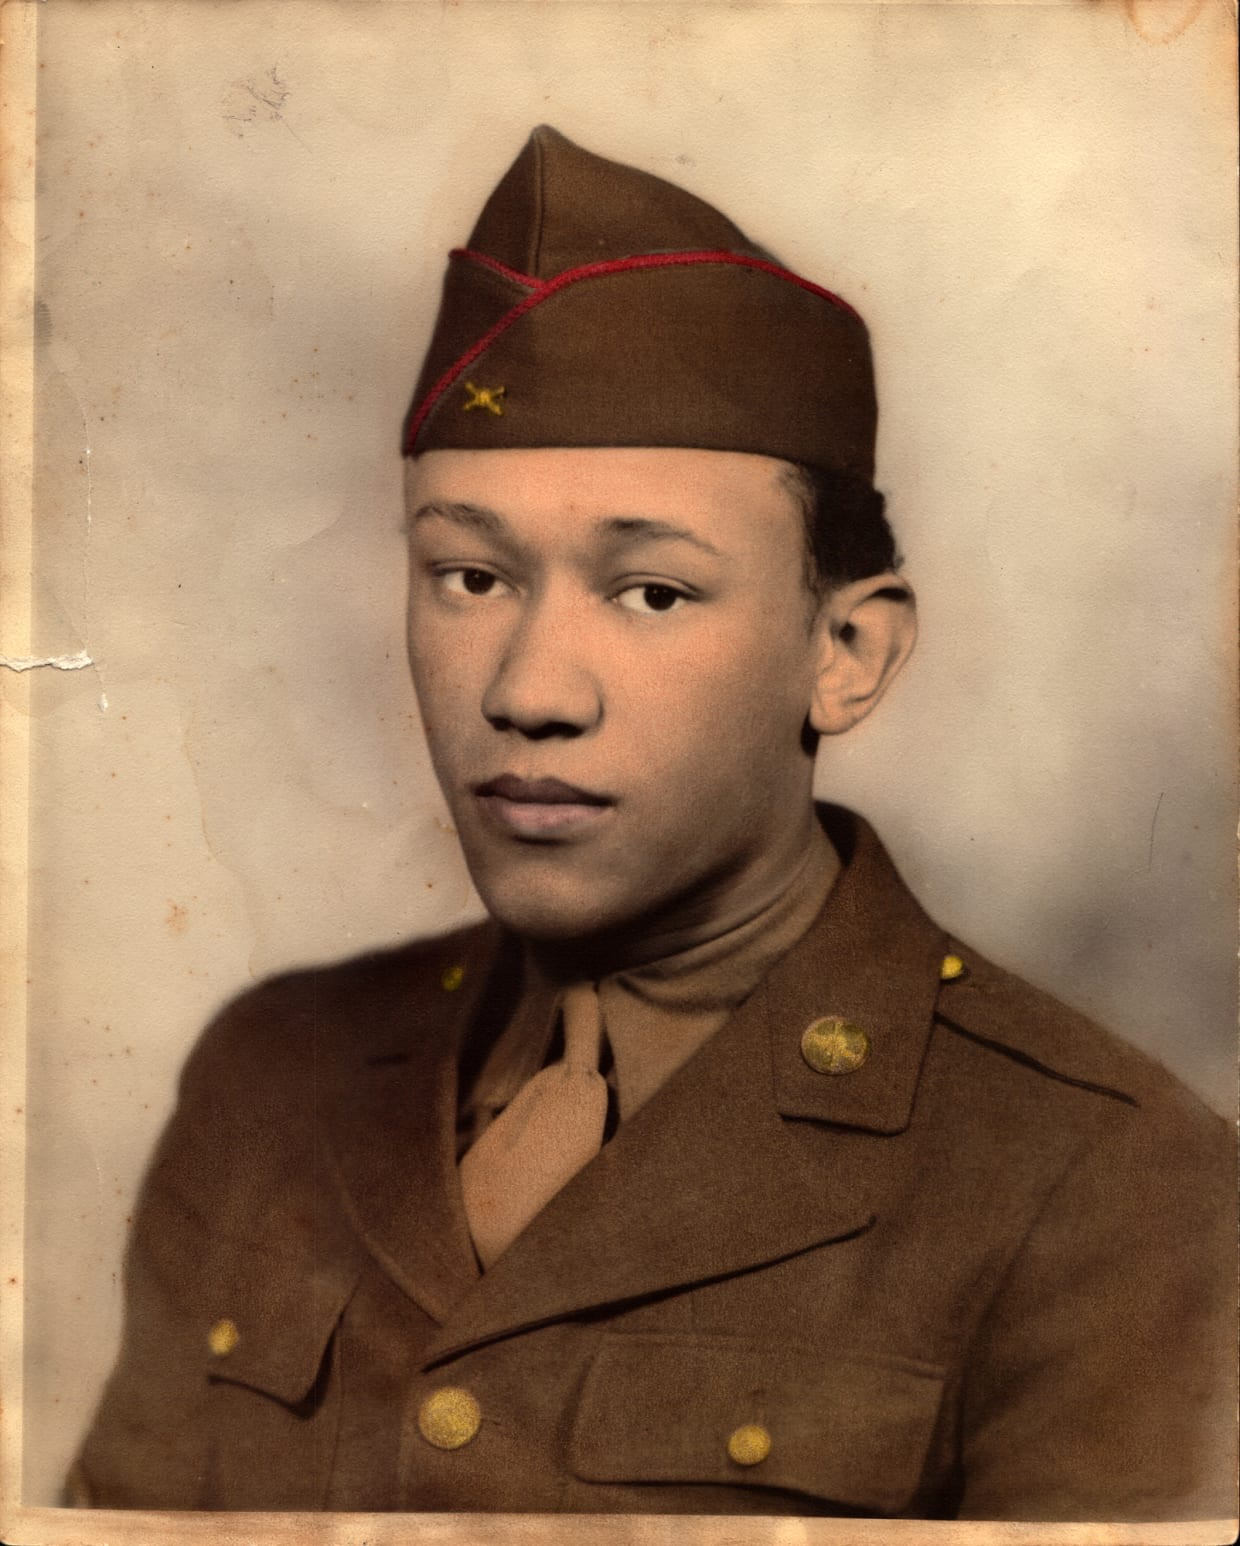 Waverly B. Woodson, Jr., a man who deserves the Medal of Honor